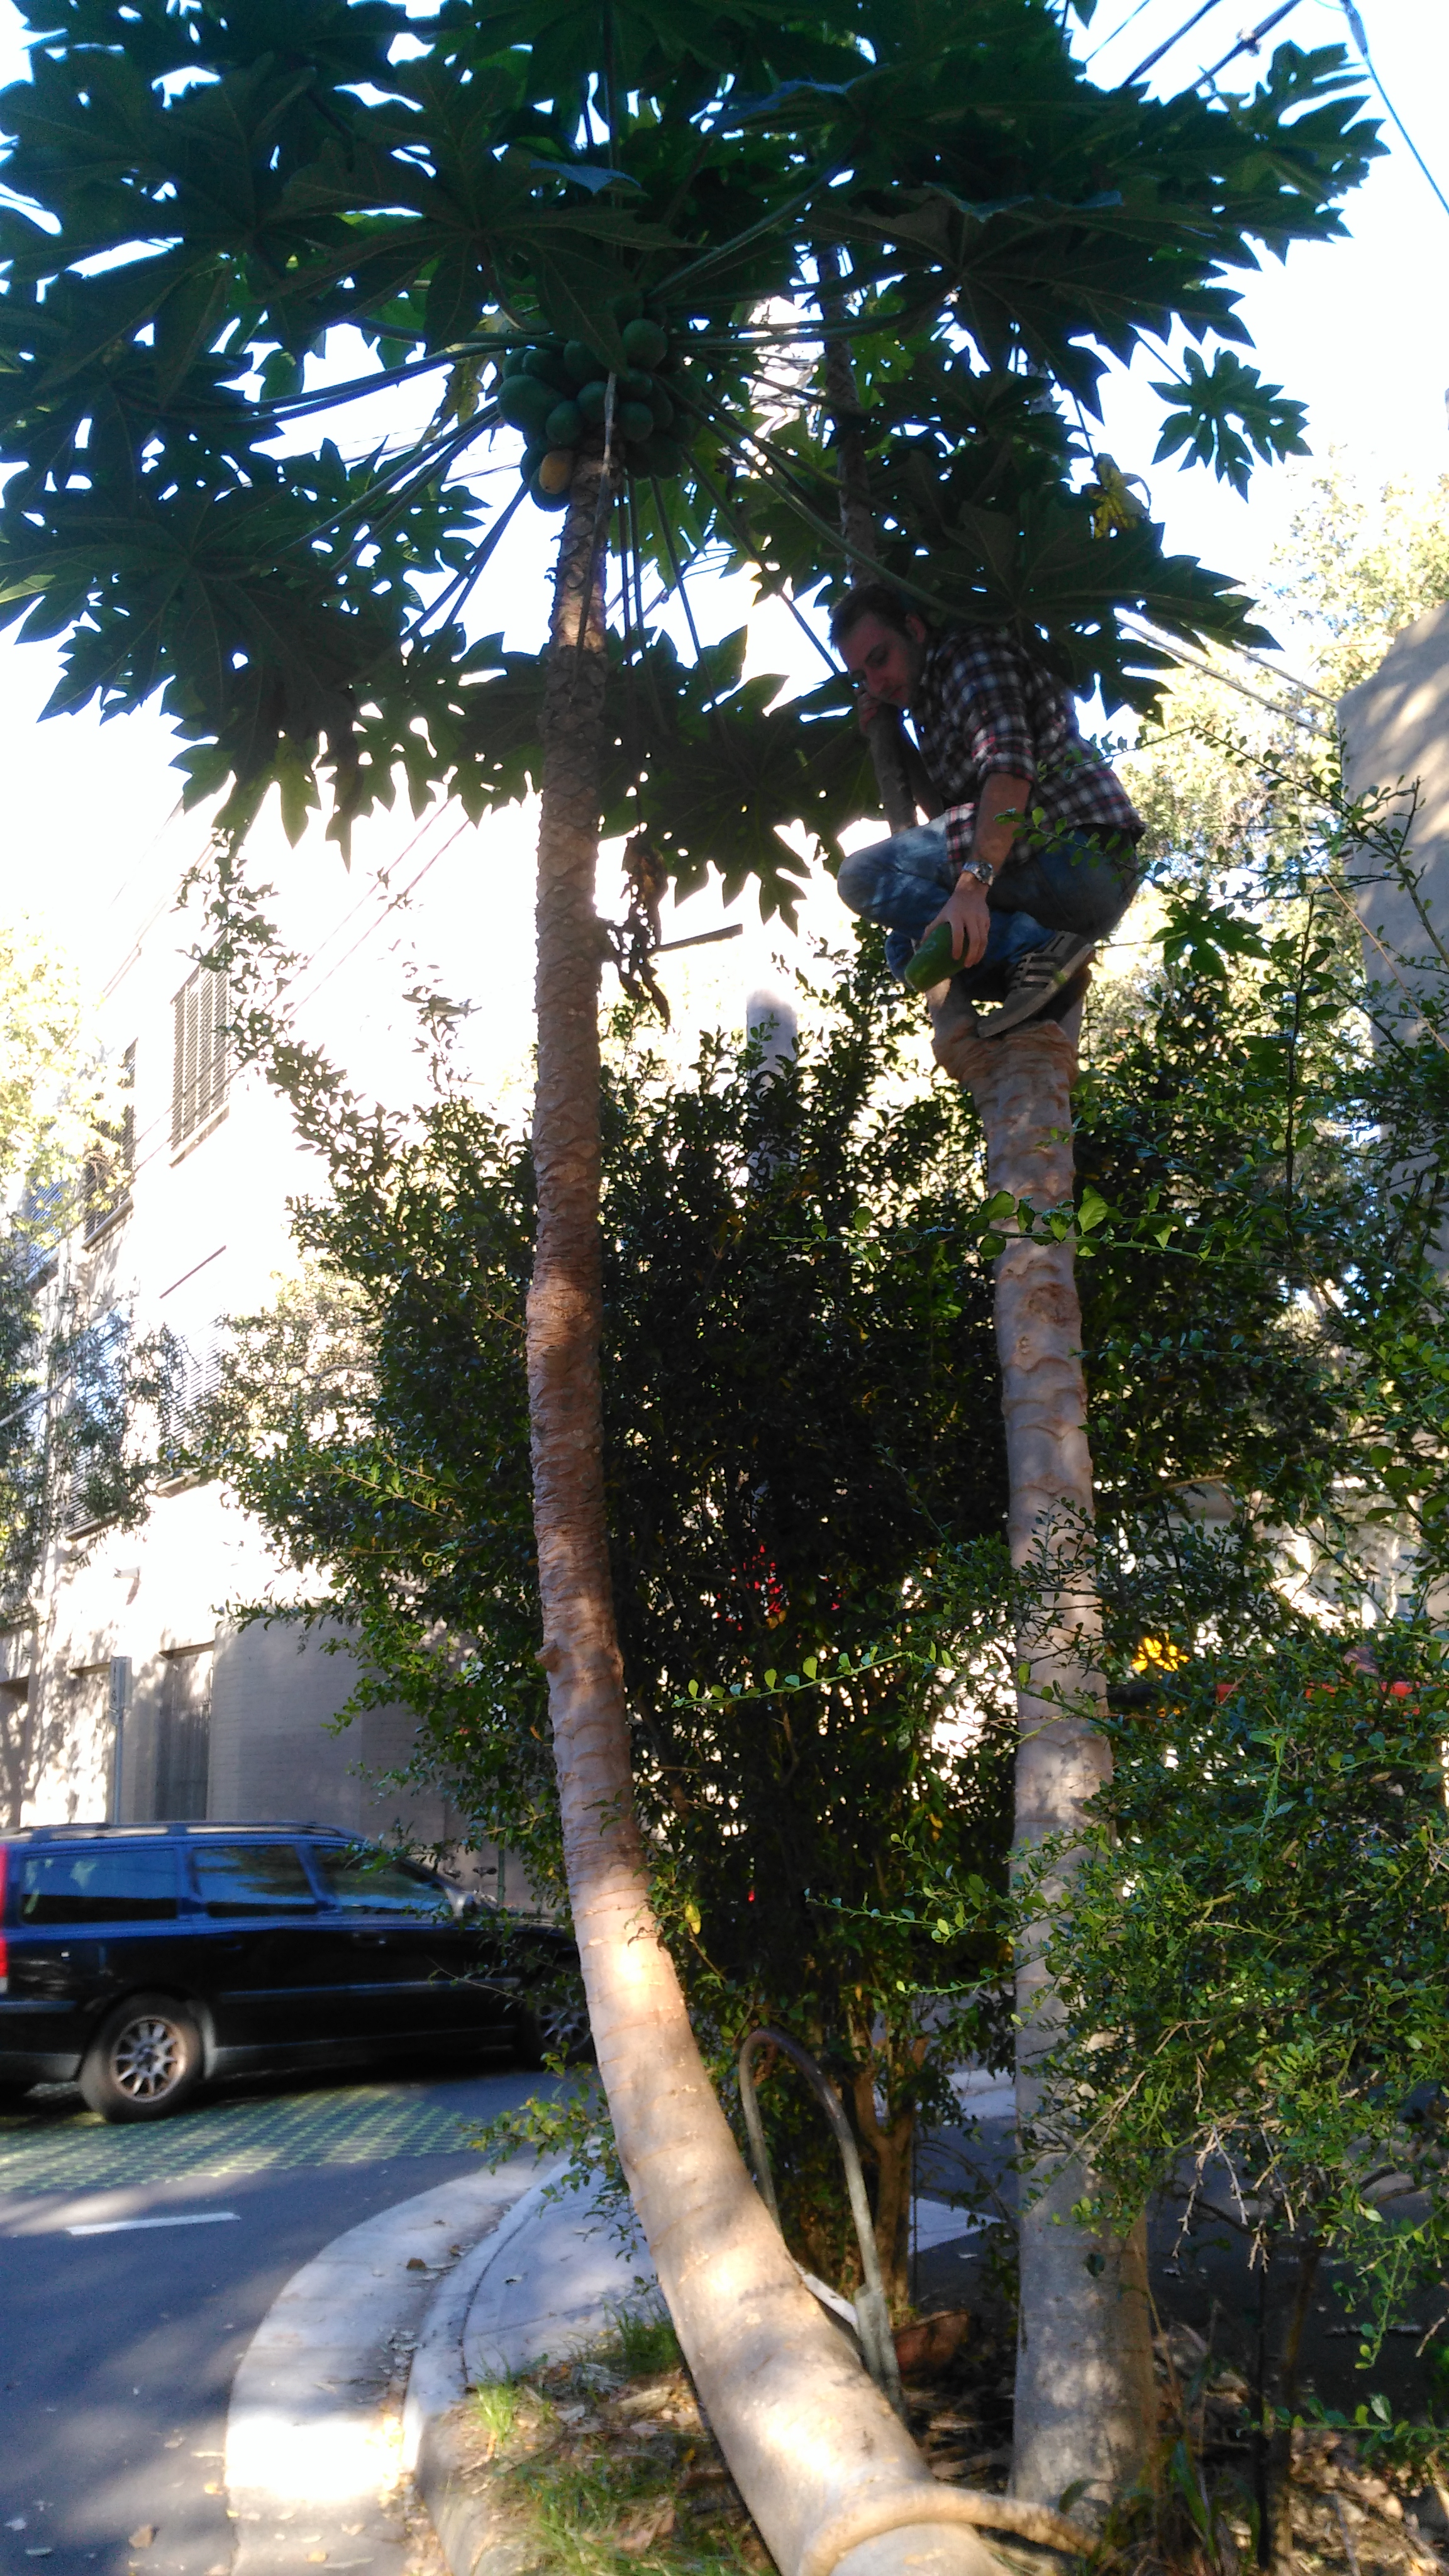 Vince getting papayas from the tree on Myrtle st